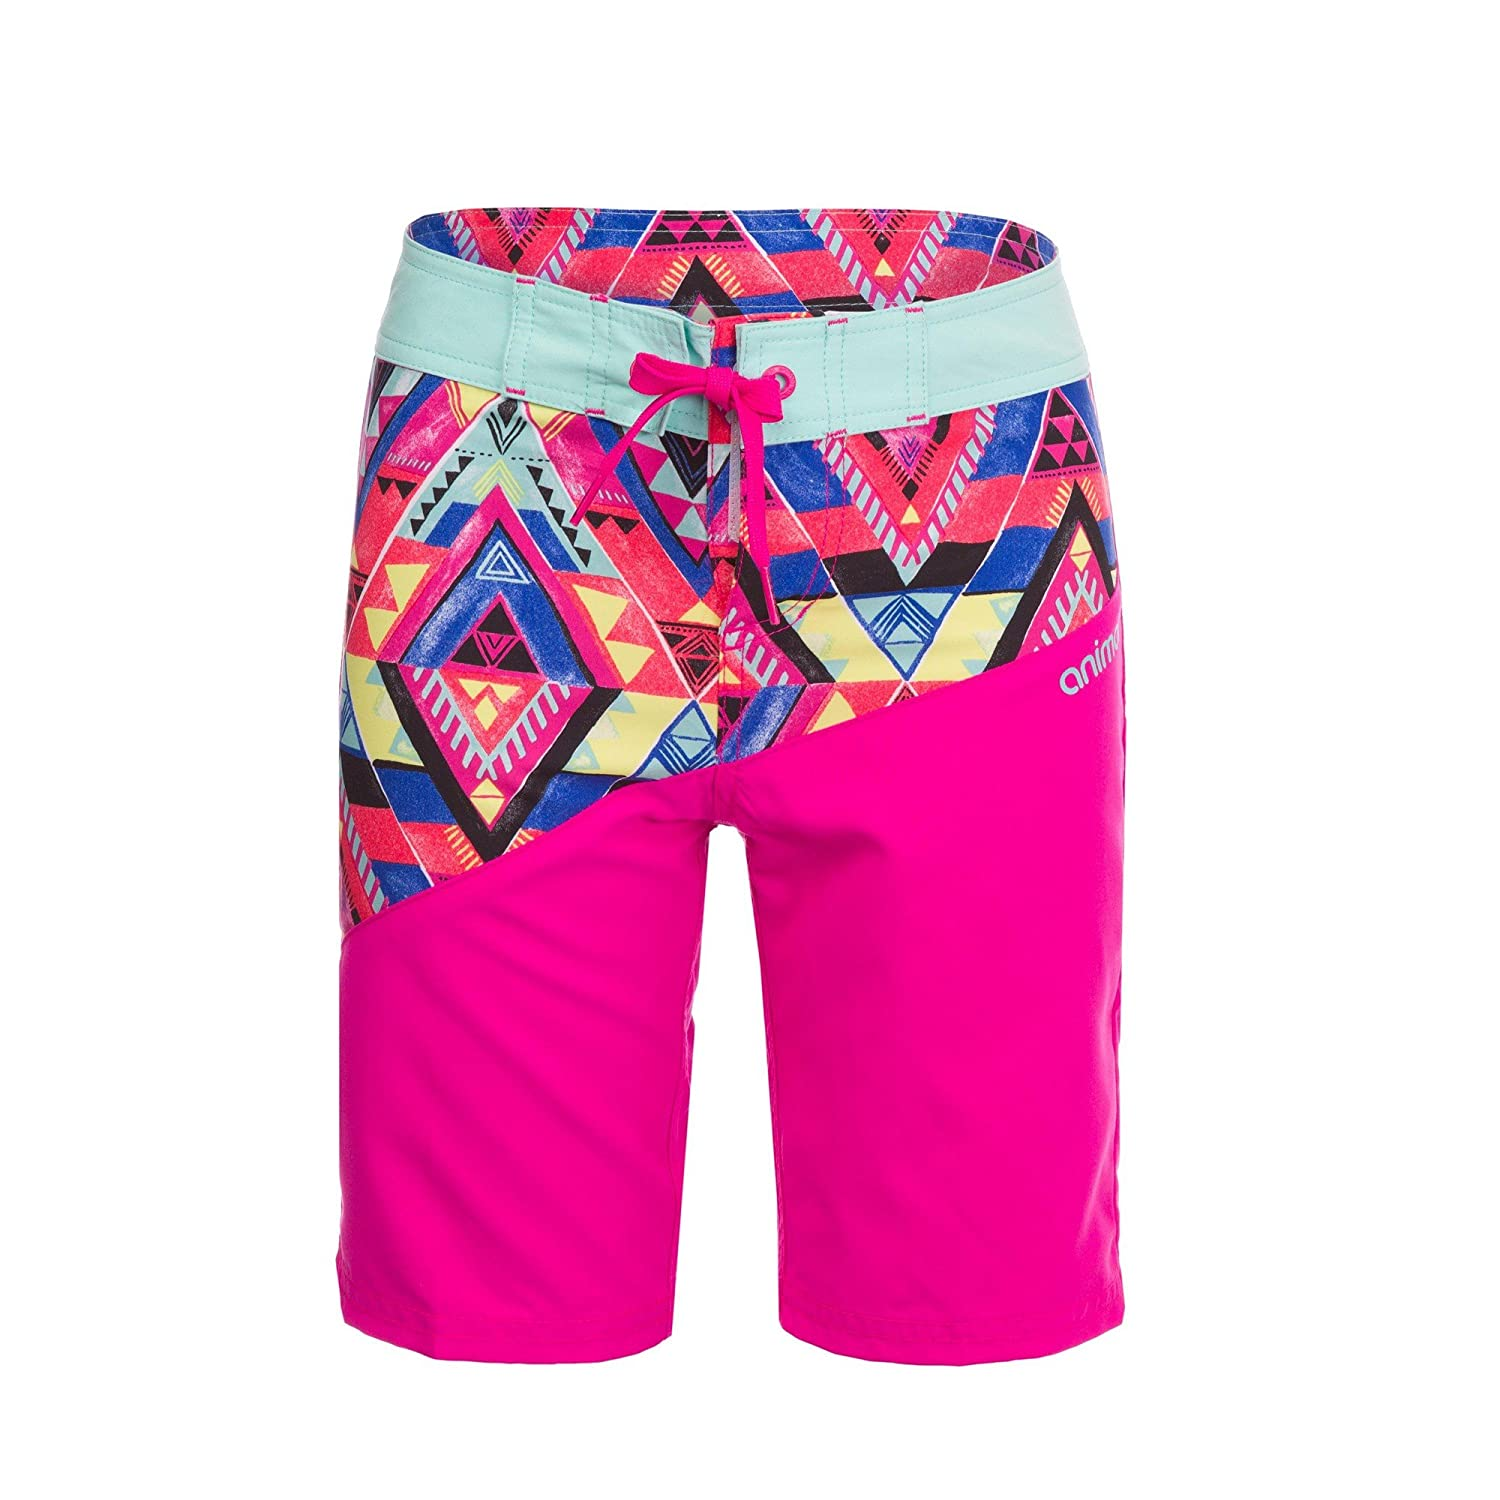 Animal Childrens Girls Angled Boardshorts UTAN999_4